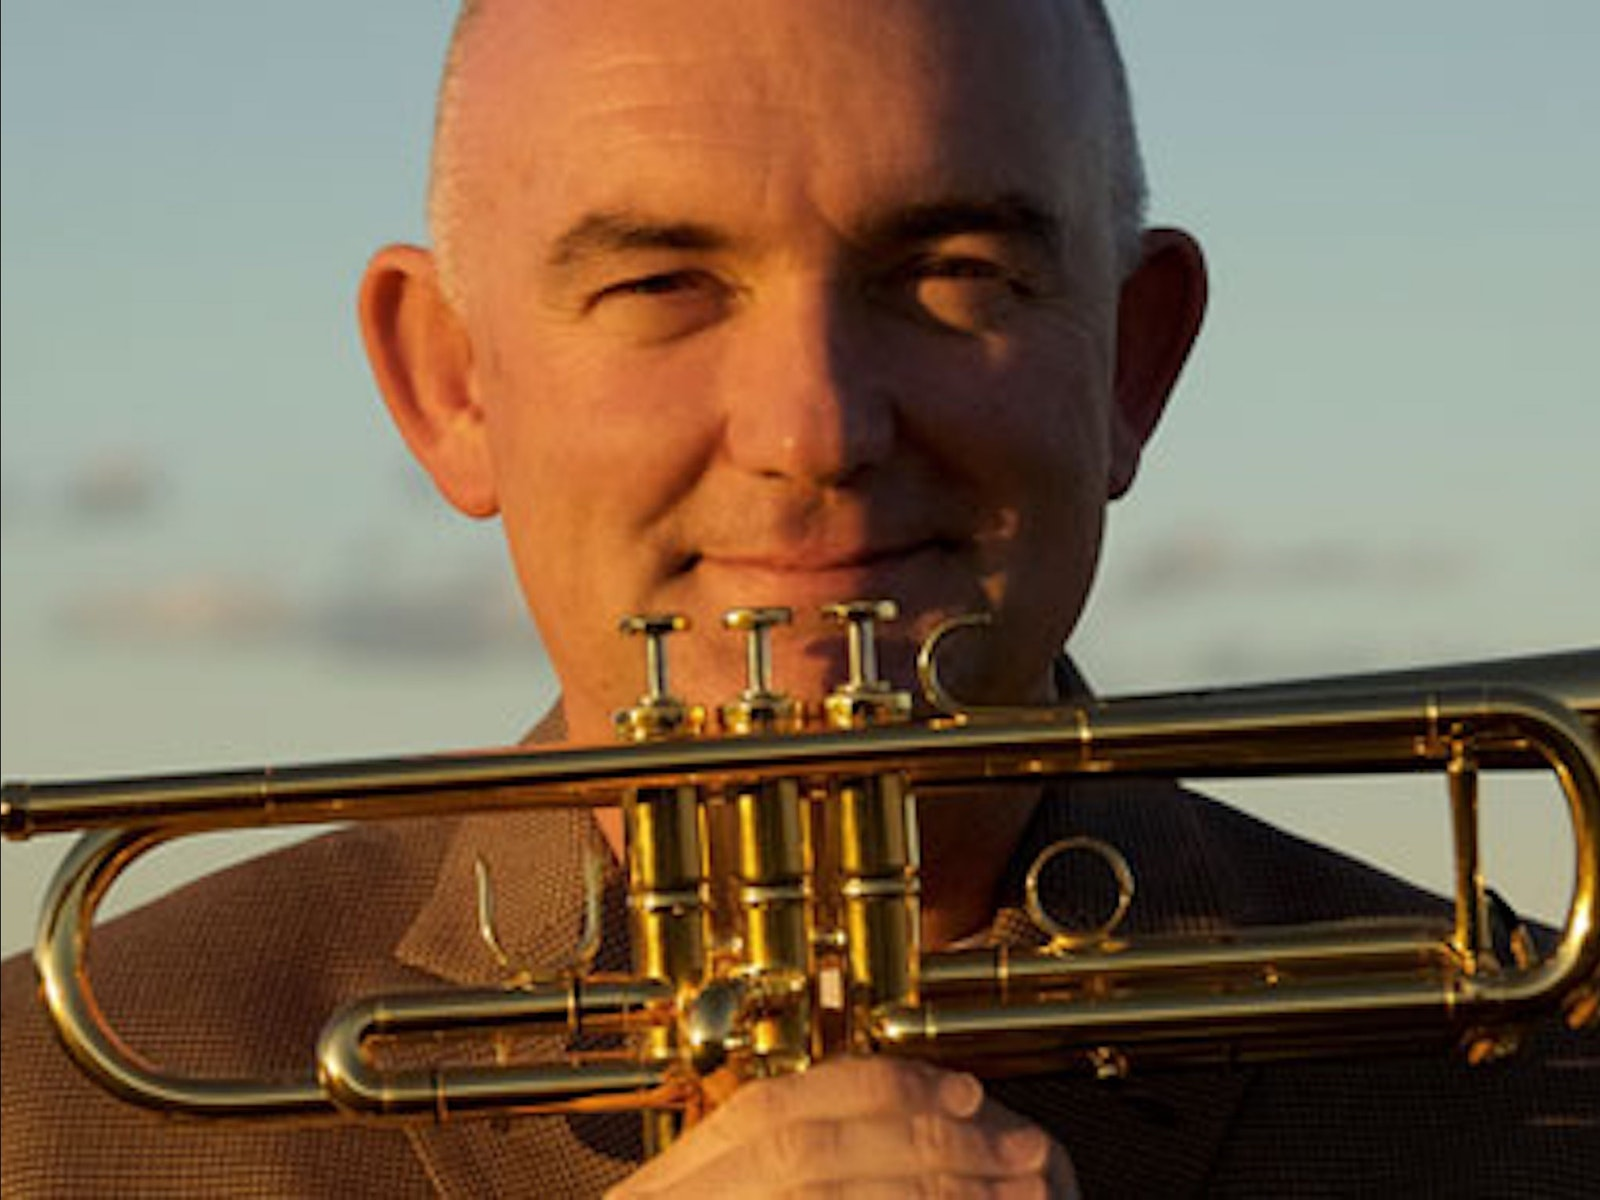 The great Australian jazzman James Morrison will perform for two nights at Bird's Basement